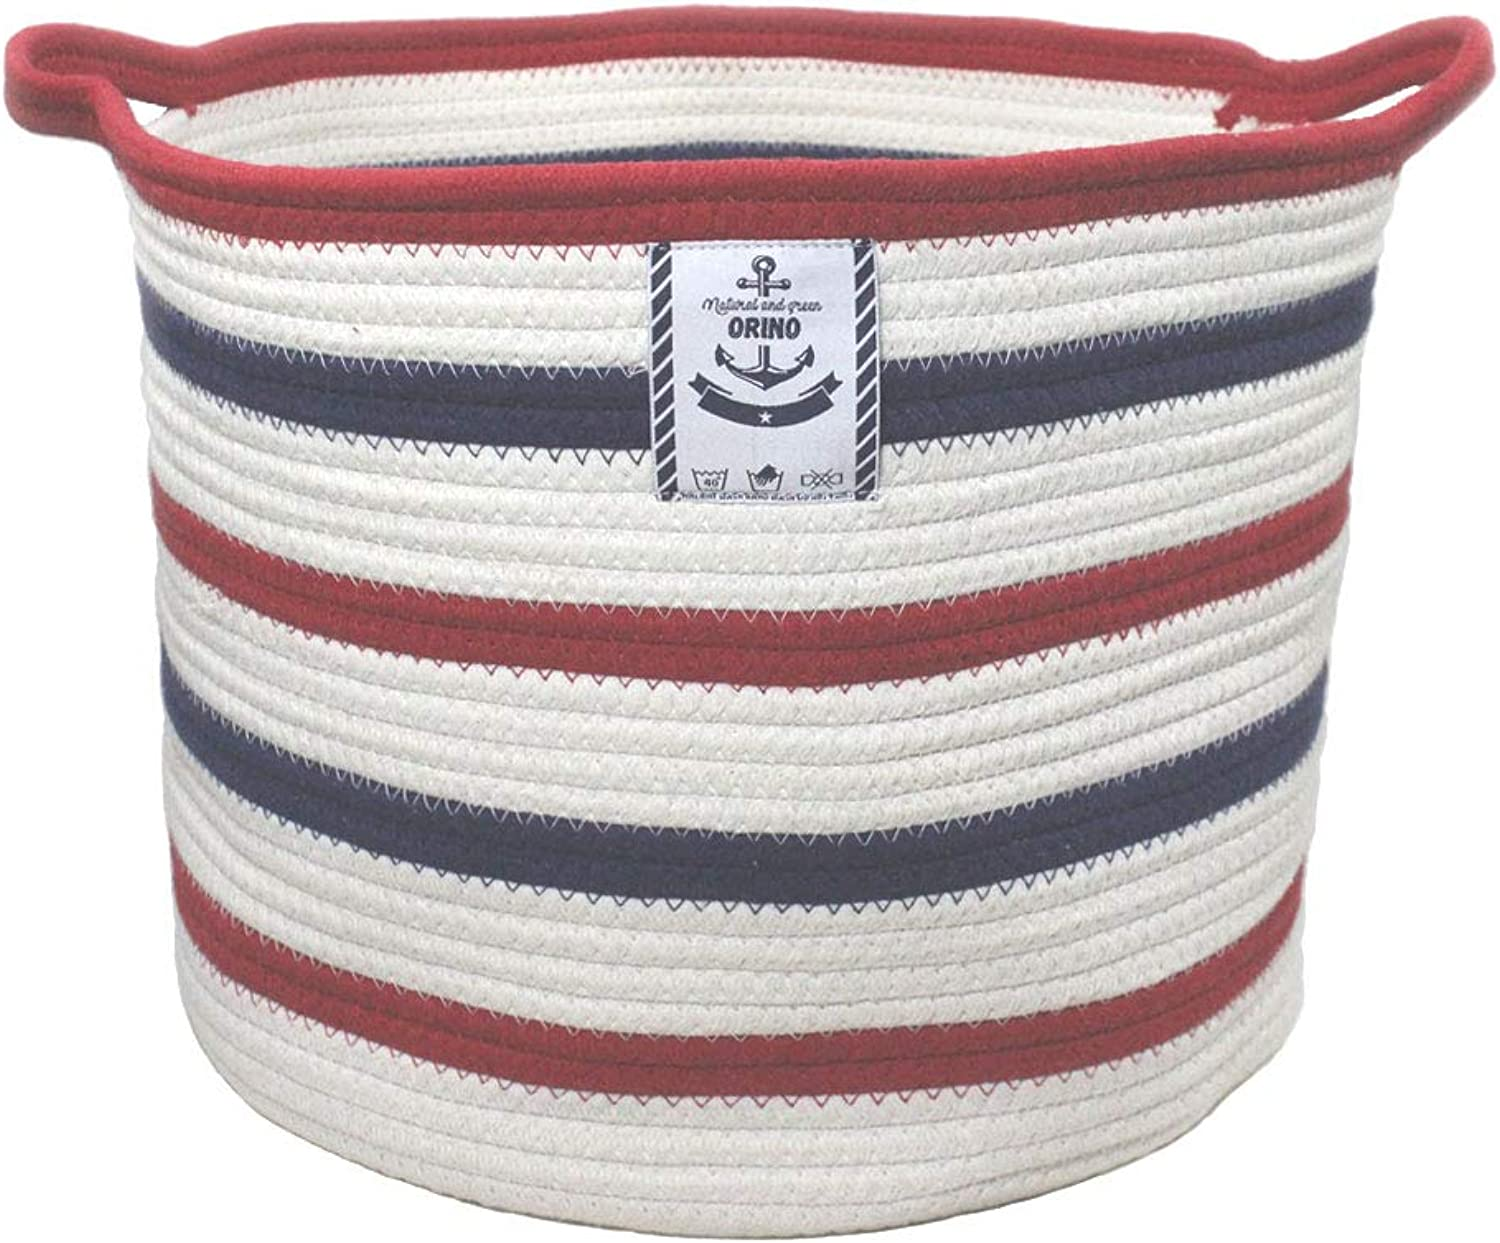 Orino Large Cotton Rope Storage Baskets with Handle Soft Durable Laundry Baskets Nursery Hamper Organizer for Kids' Toys Home Decorations Blanket Basket (15.8x15x11.8 inch, bluee and Red Stripe)